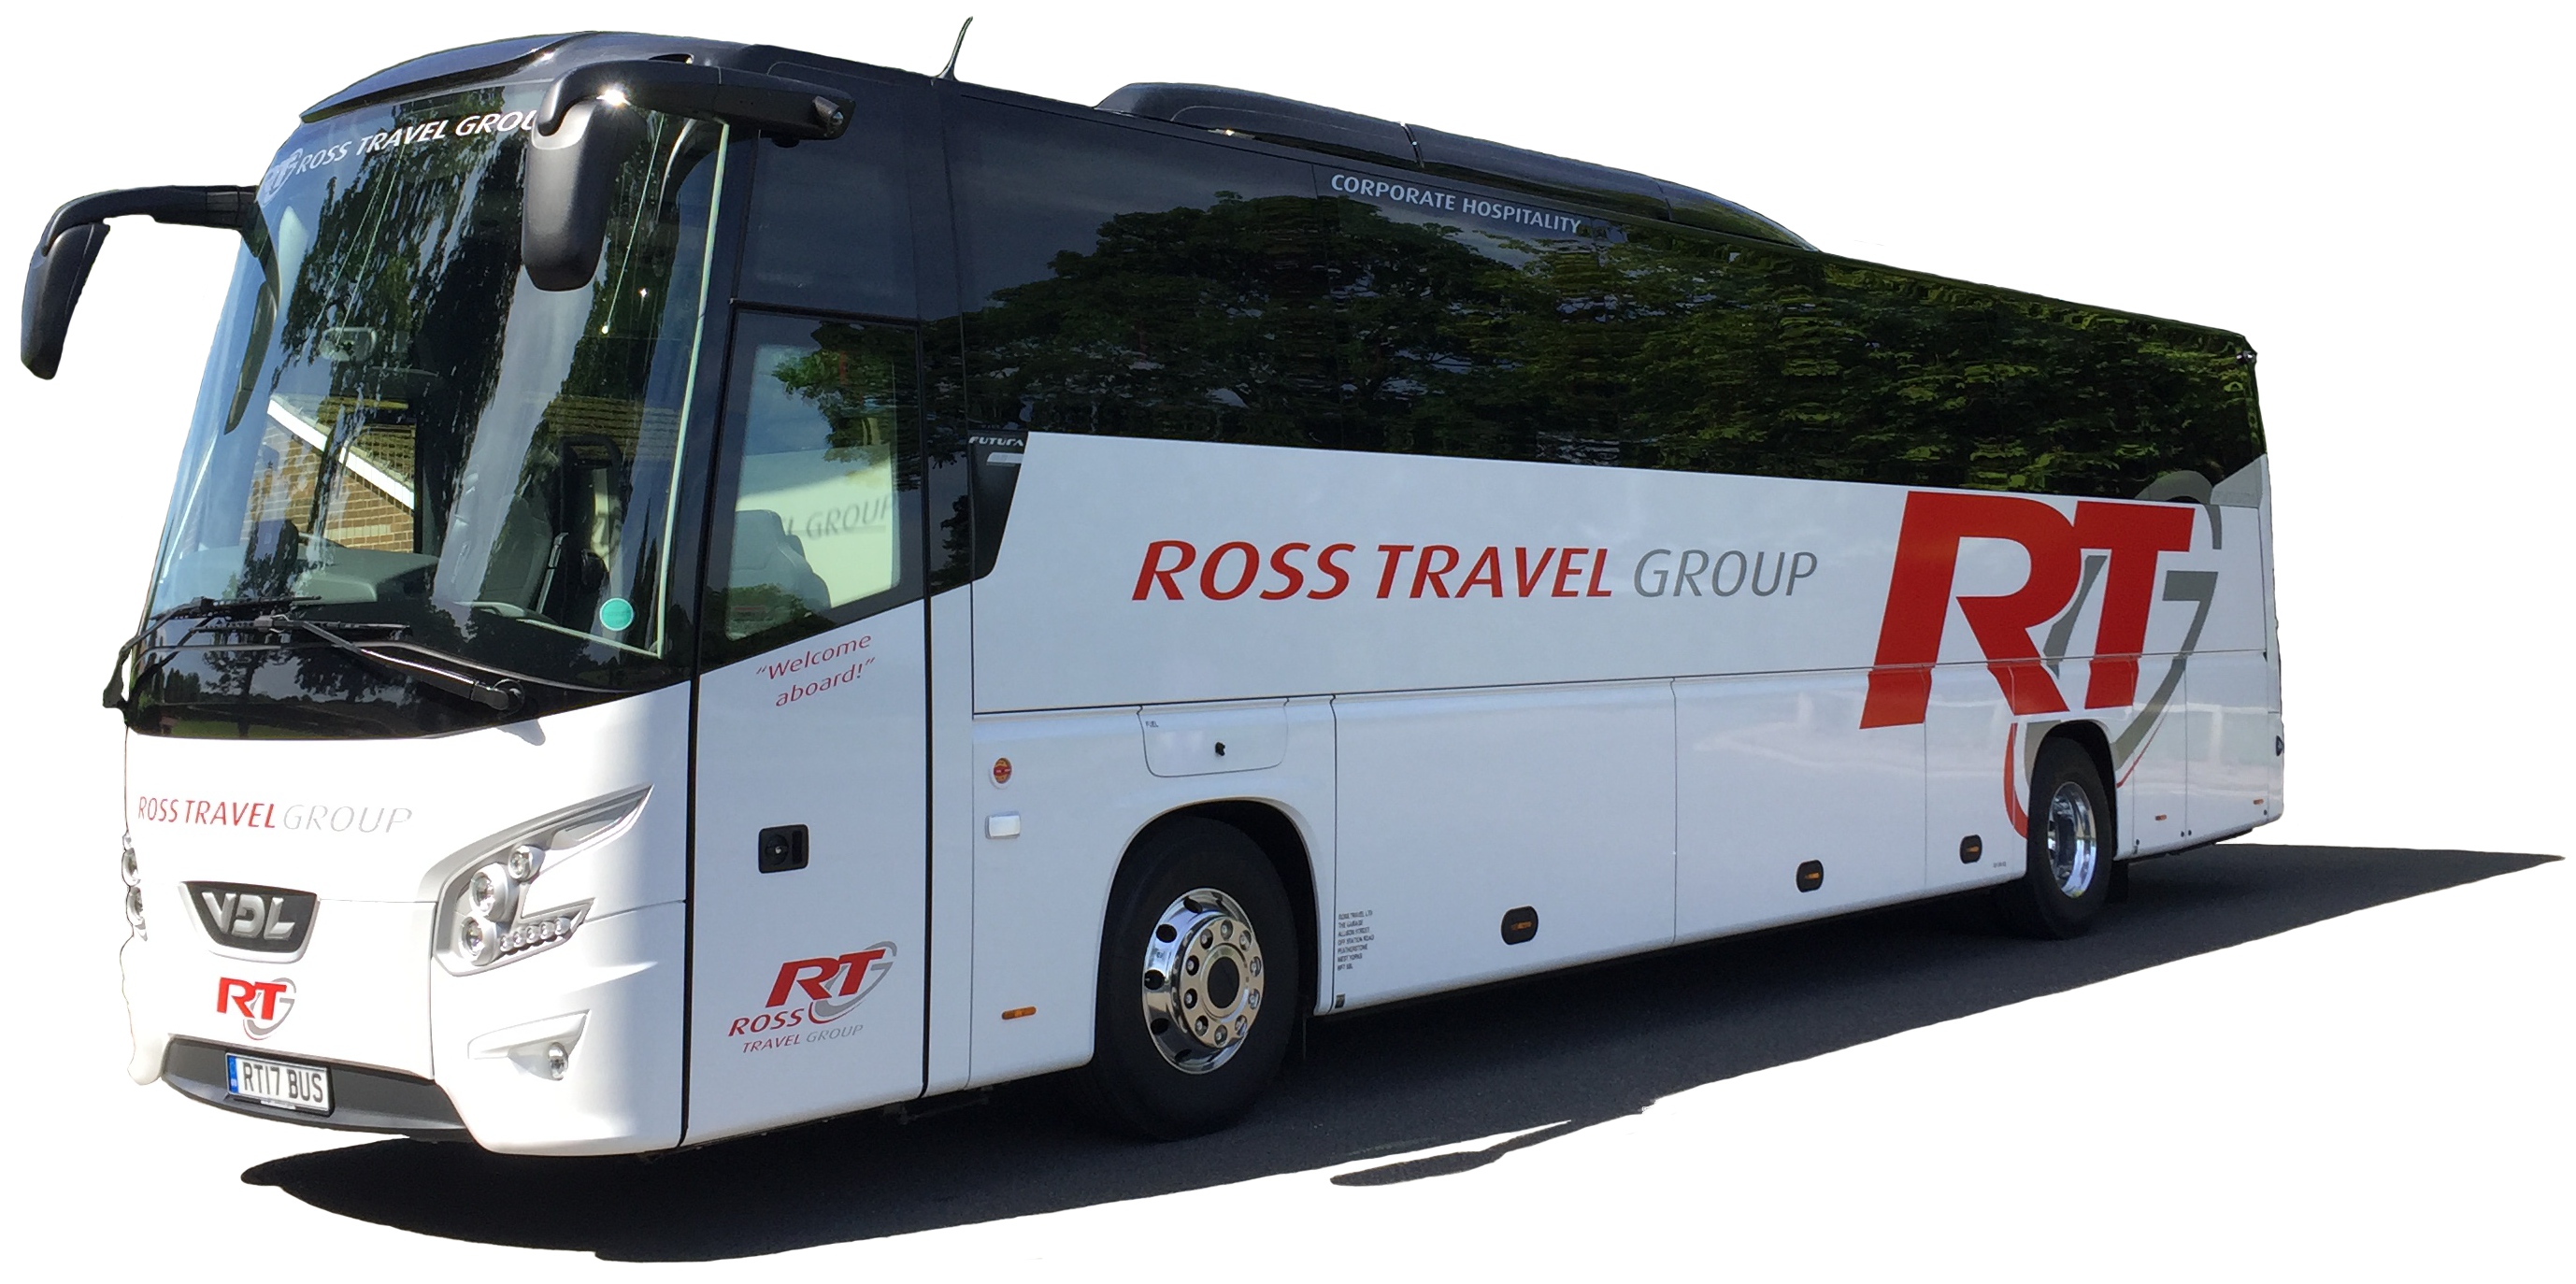 over 50 four-in-hand tours